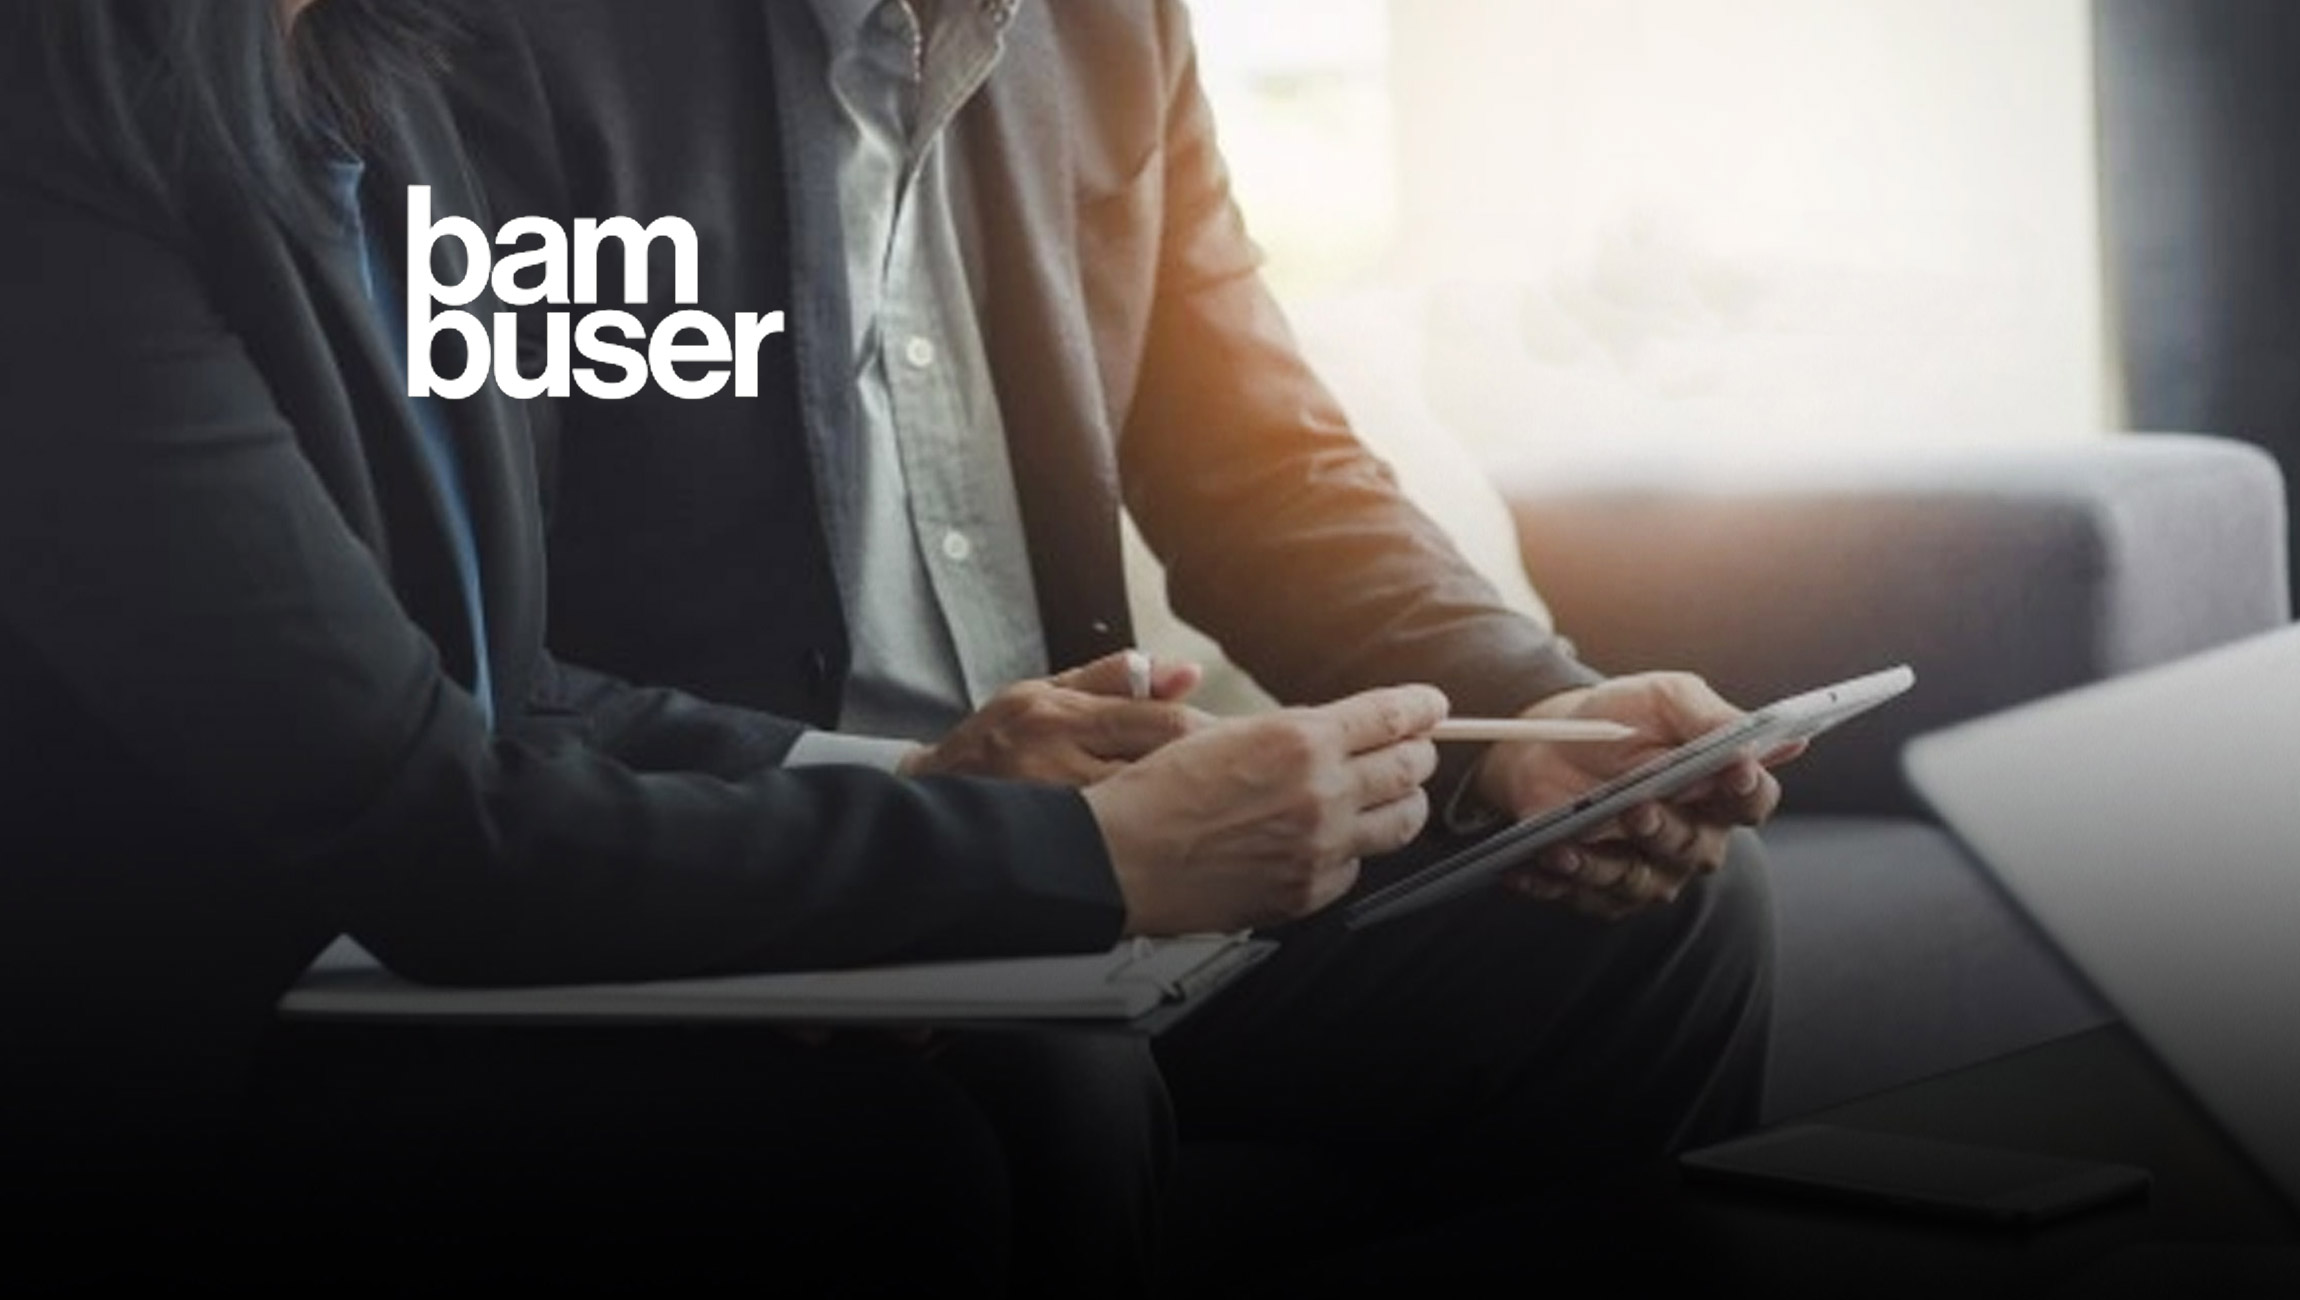 Bambuser Signs Contract With Japanese Multinational Company